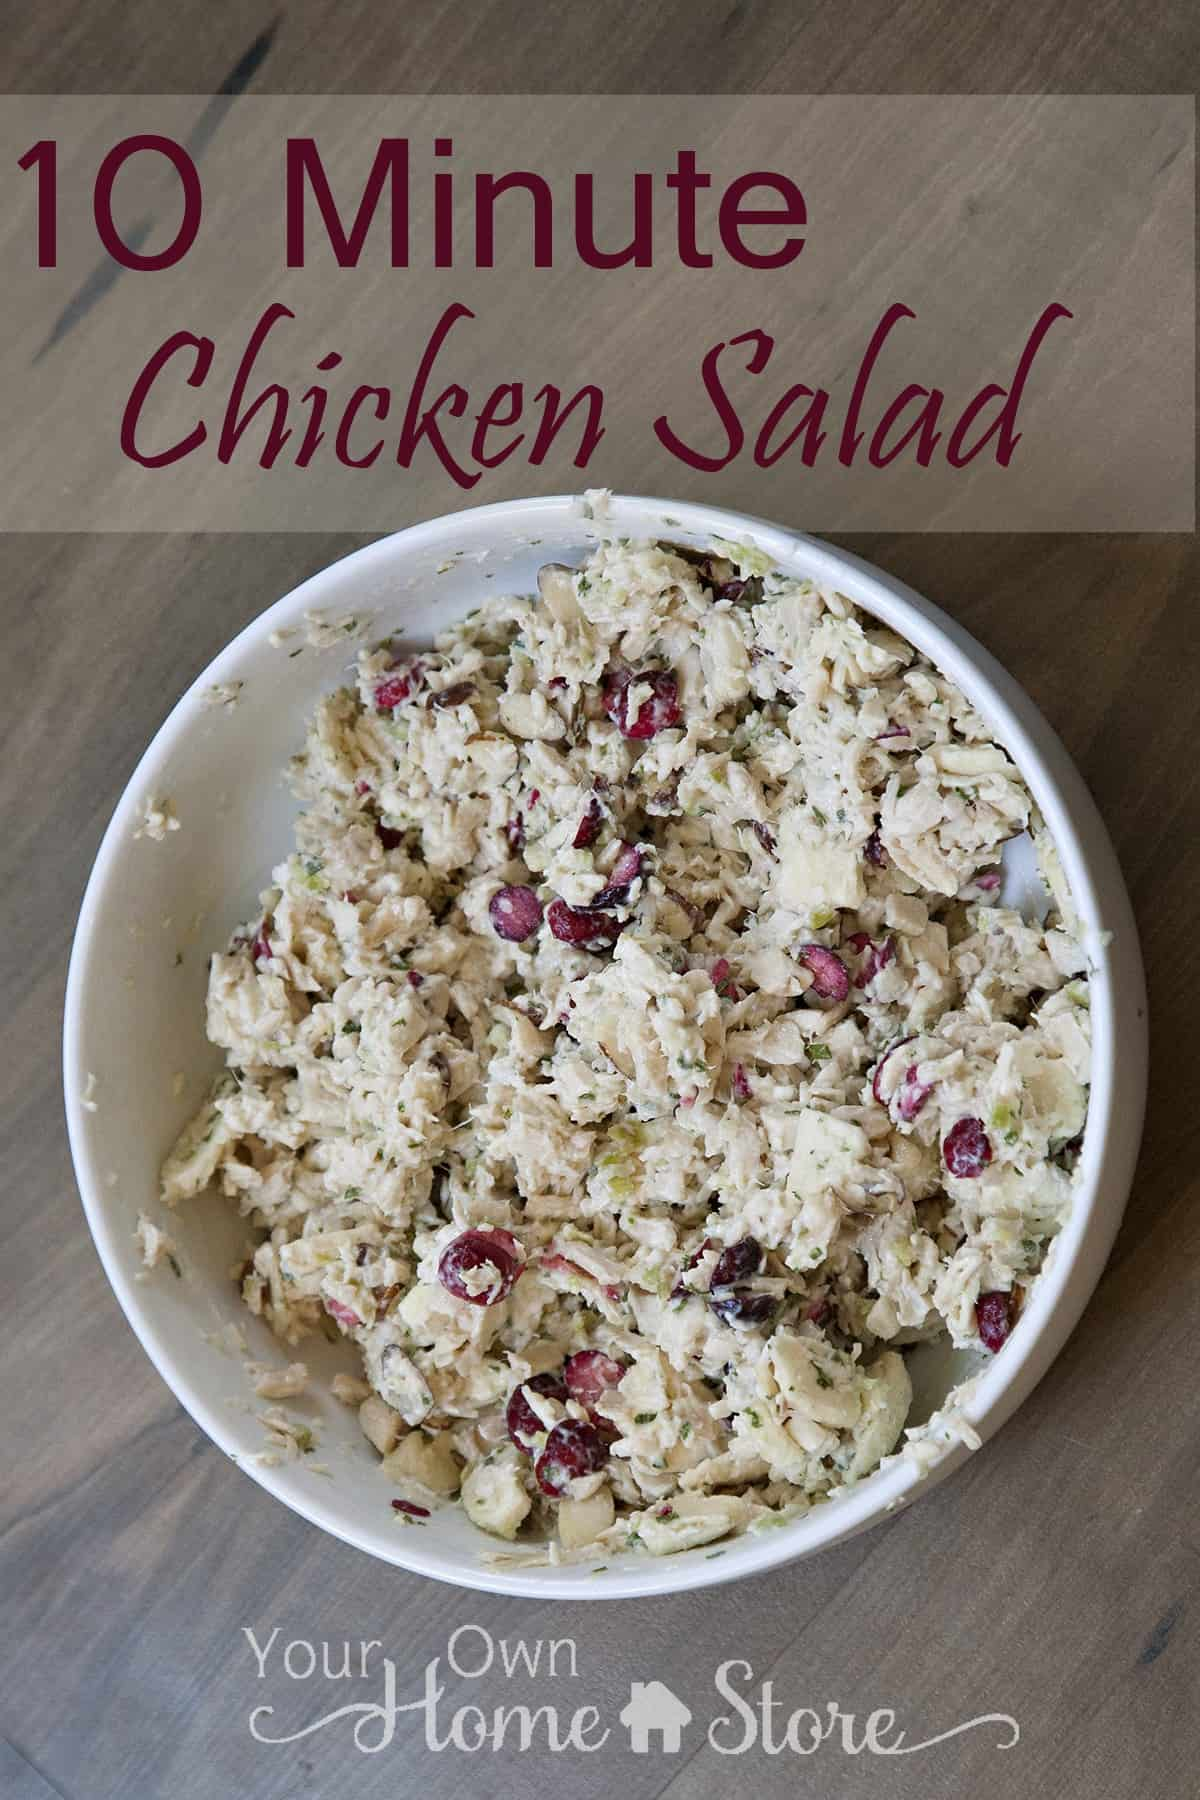 10 Minute Chicken Salad Recipe from Simple Family Preparedness https://simplefamilypreparedness.com/chicken-salad/